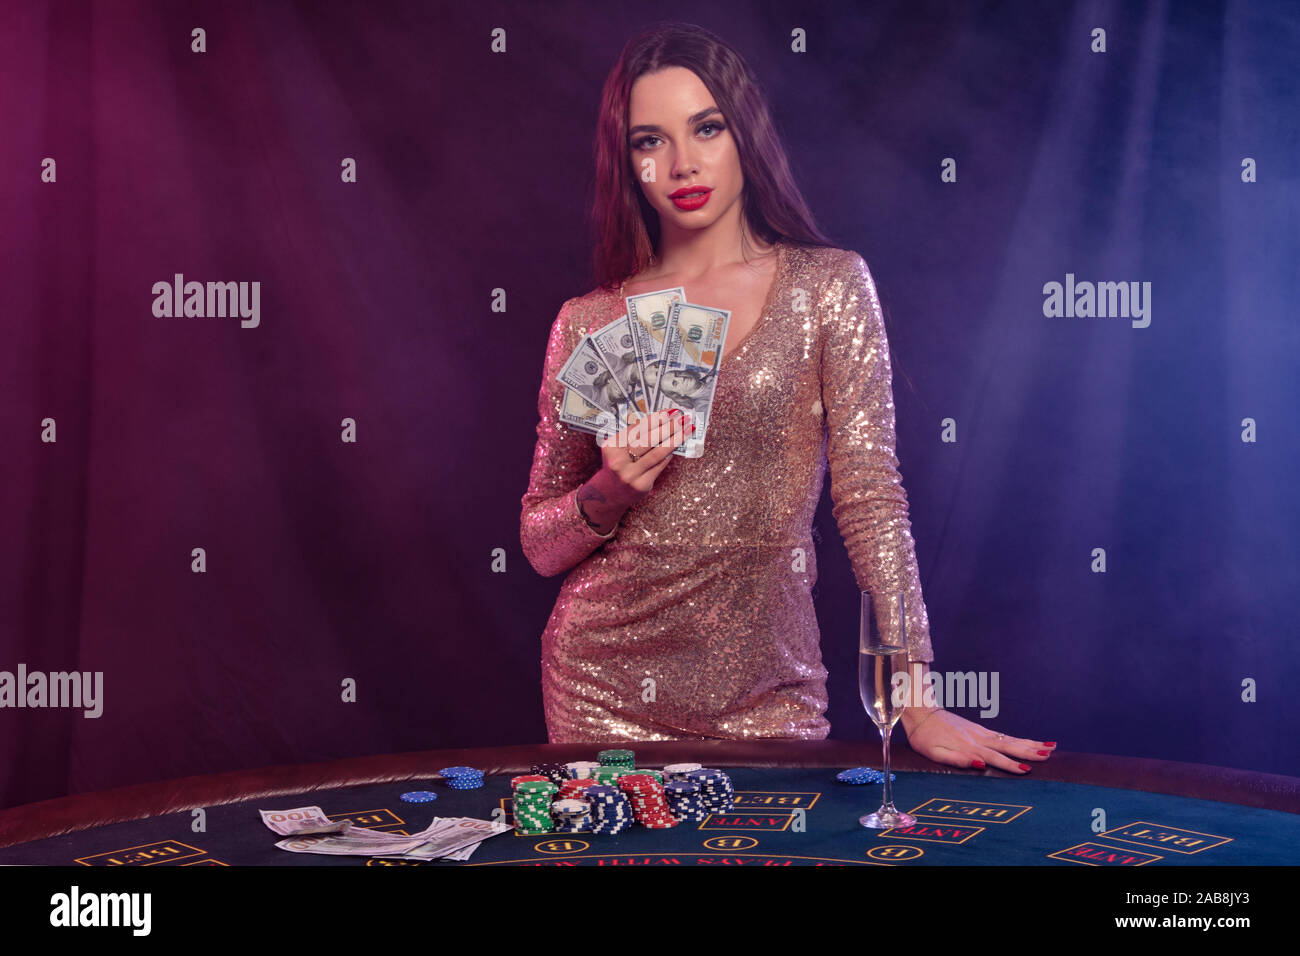 Girl Playing Poker At Casino Holding Money Posing At Table With Chips Champagne Cash On It Black Smoke Background Close Up Stock Photo Alamy